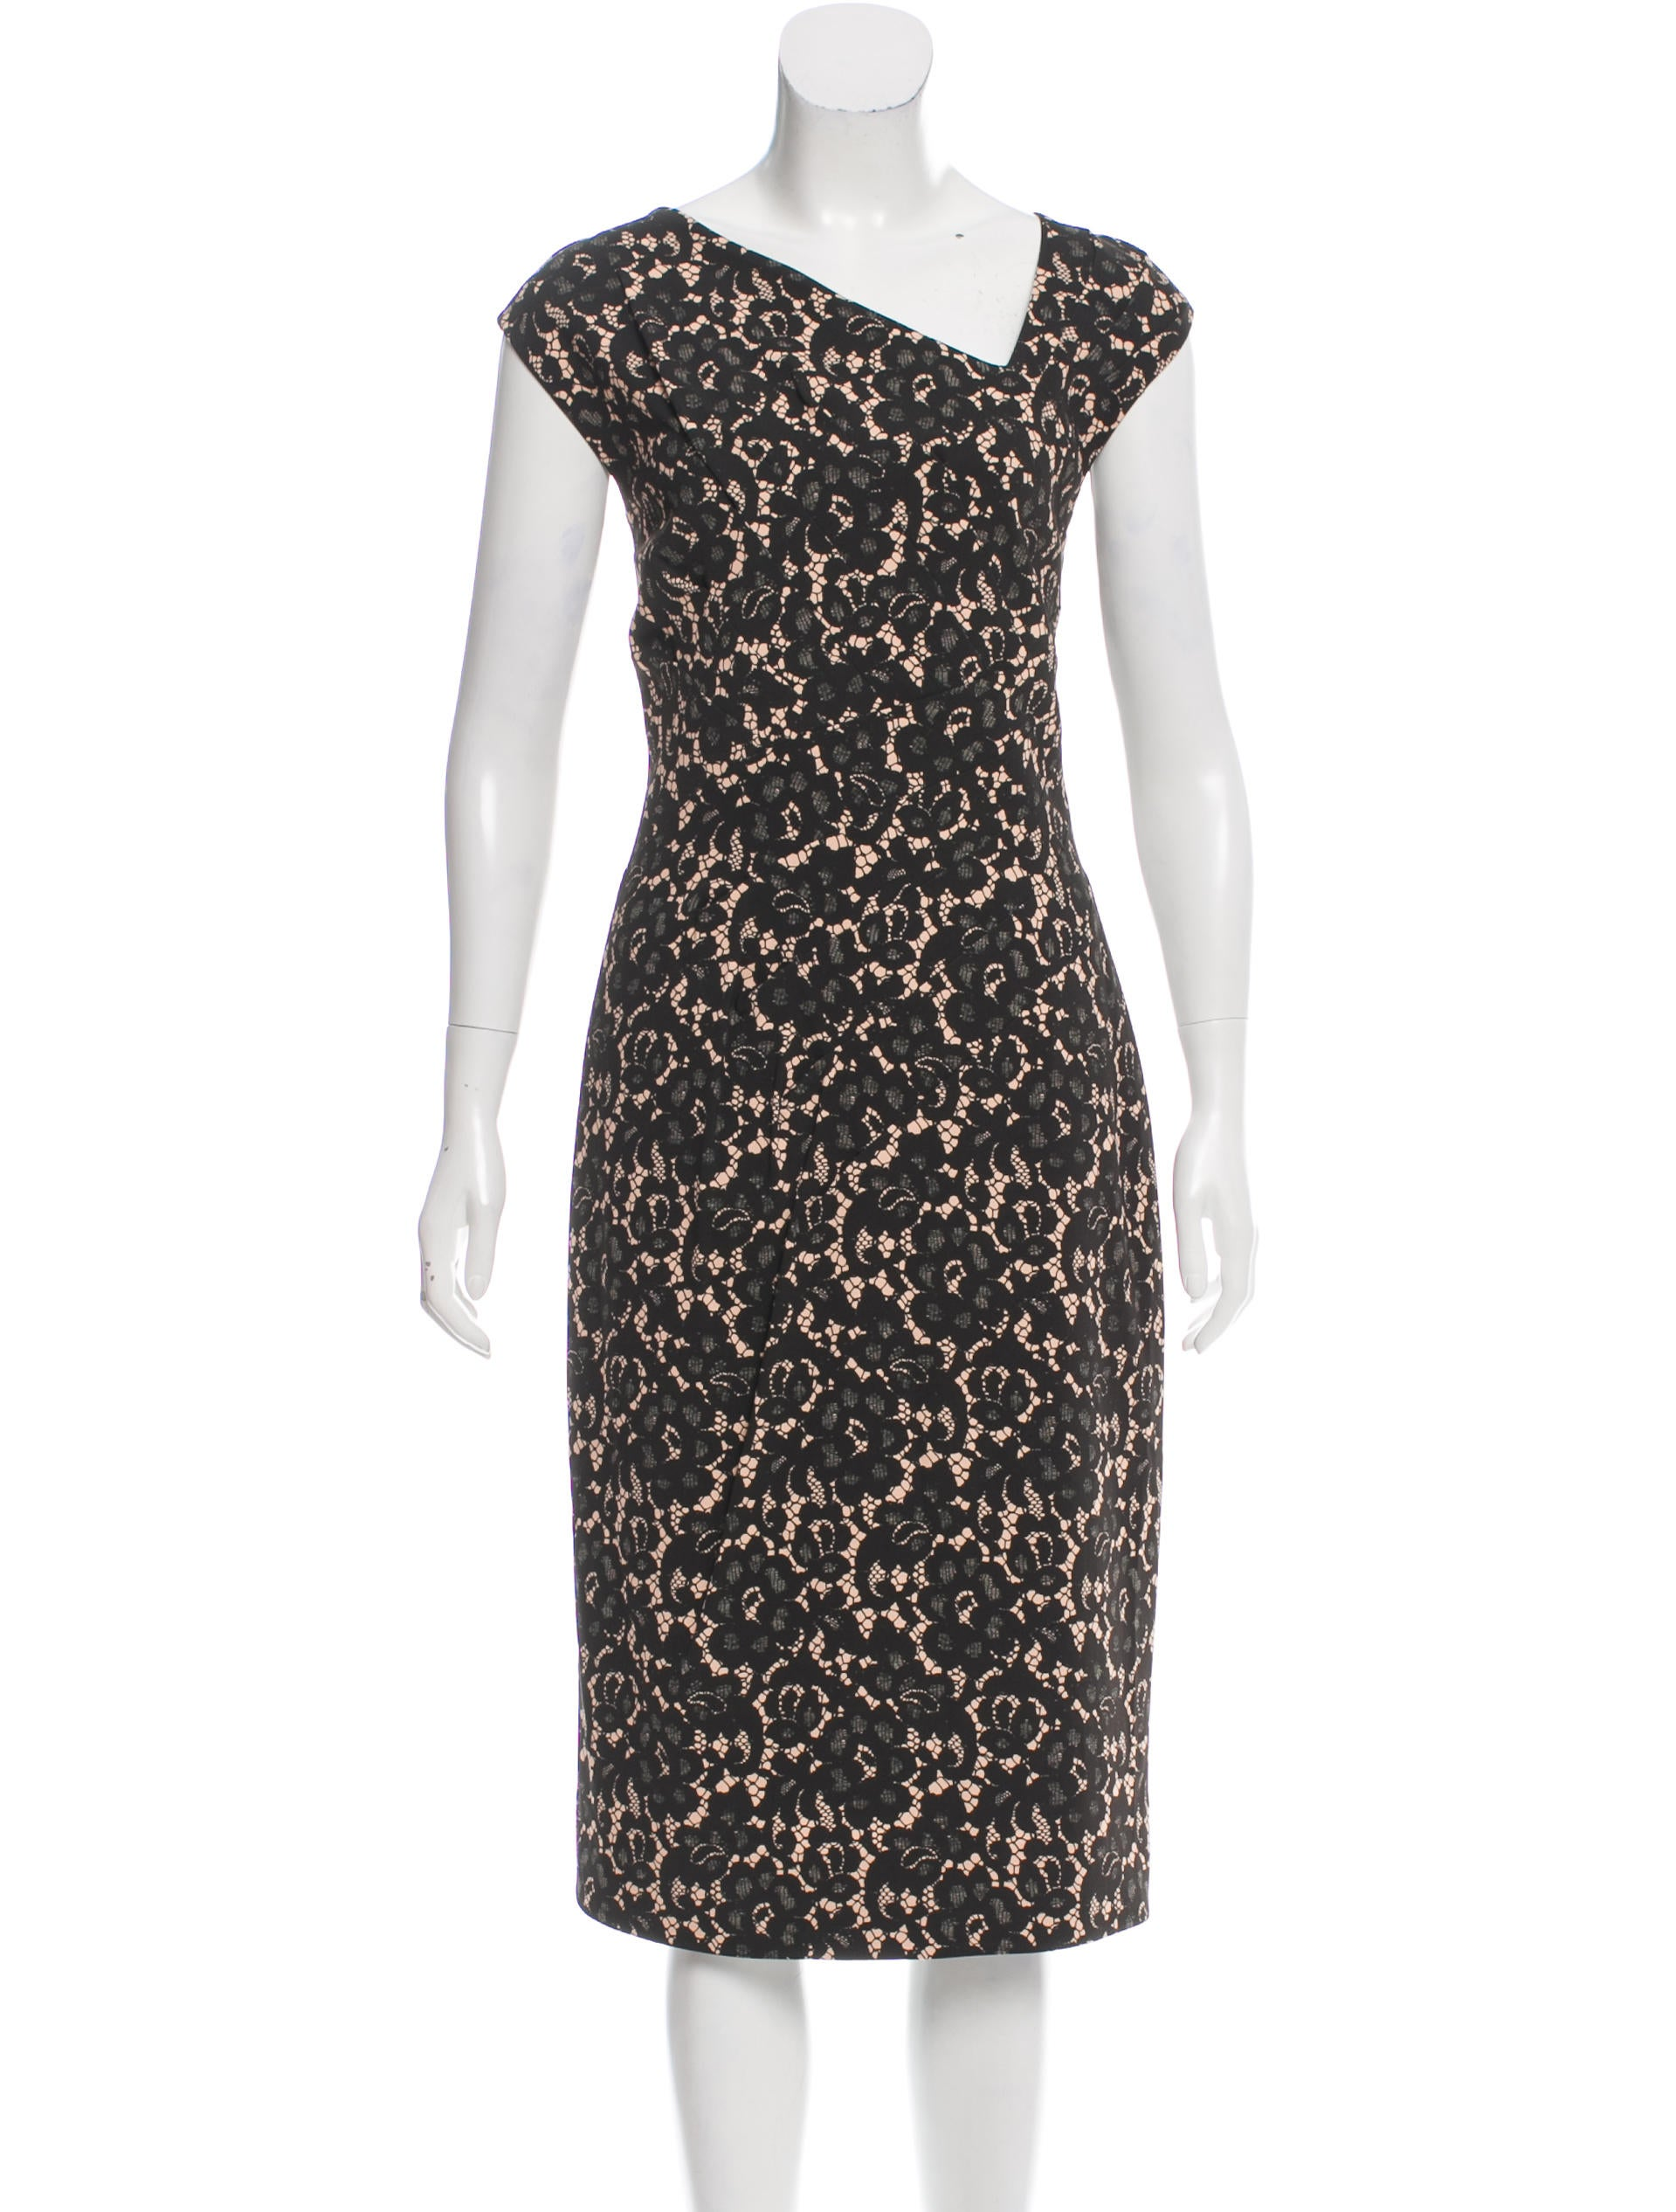 Michael Kors Lace Print Draped Dress - Clothing - MIC47980 ...